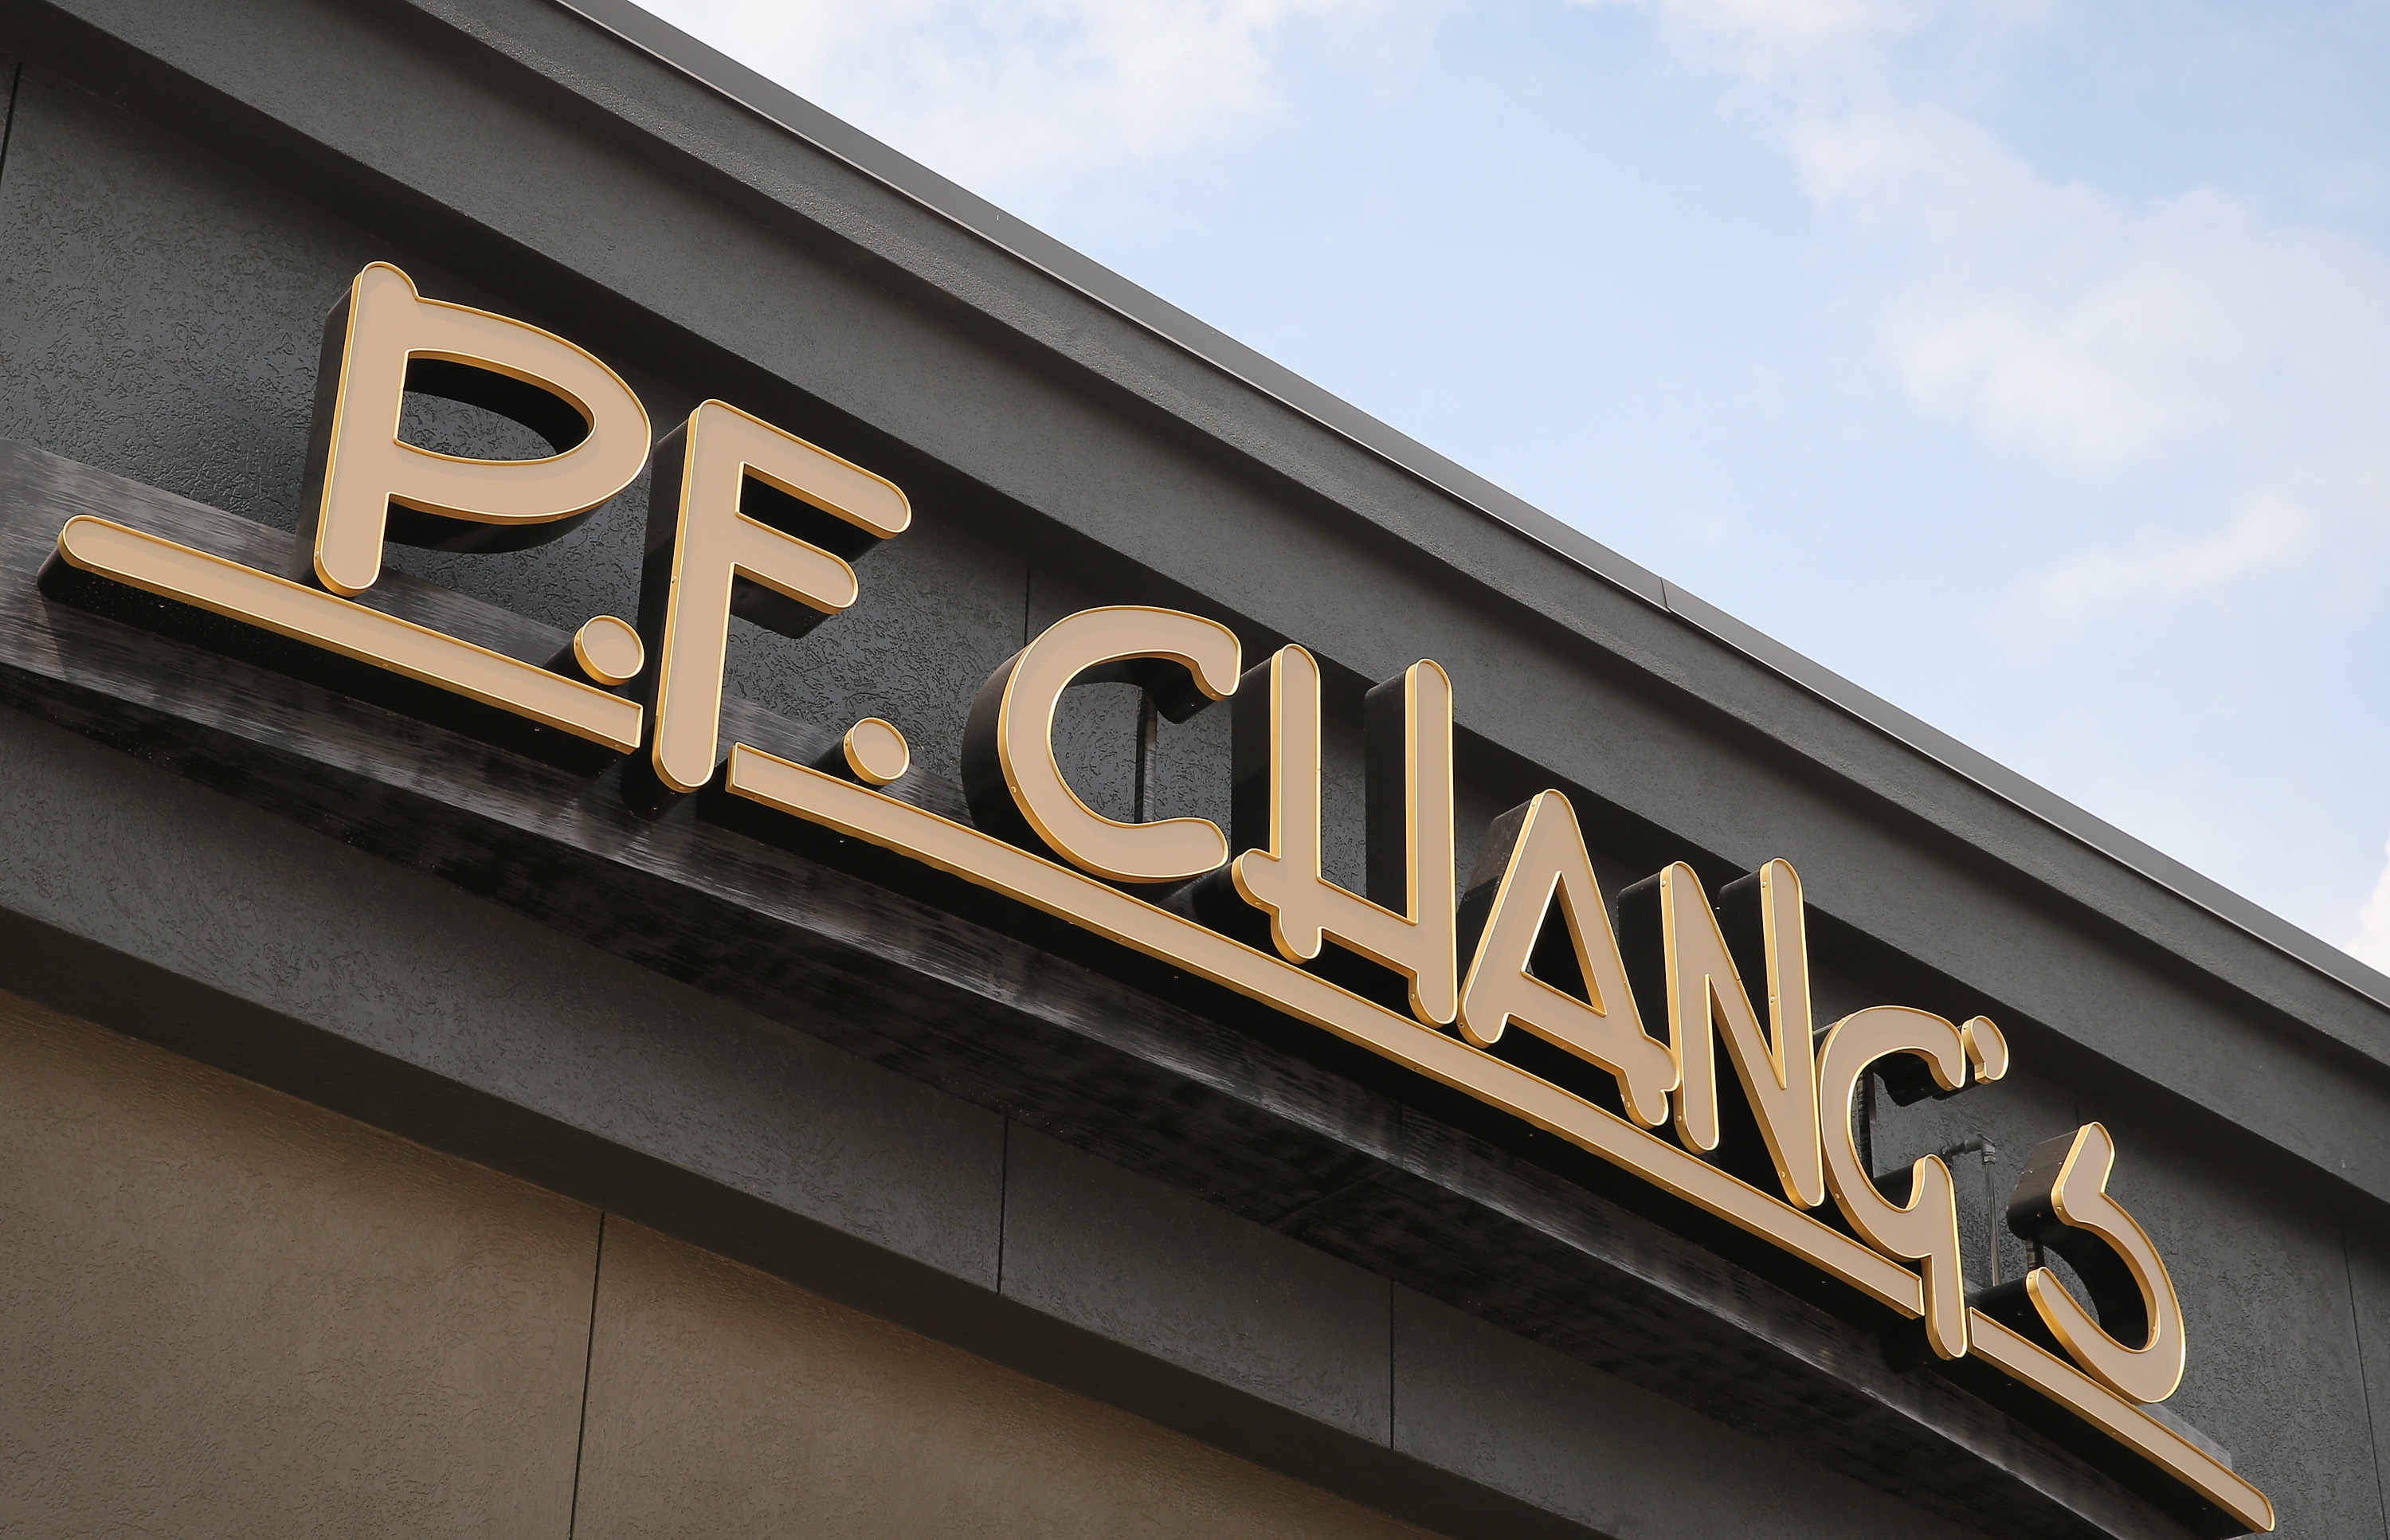 P.F. Chang's Restaurant Chain Announces Credit Card Security Breach